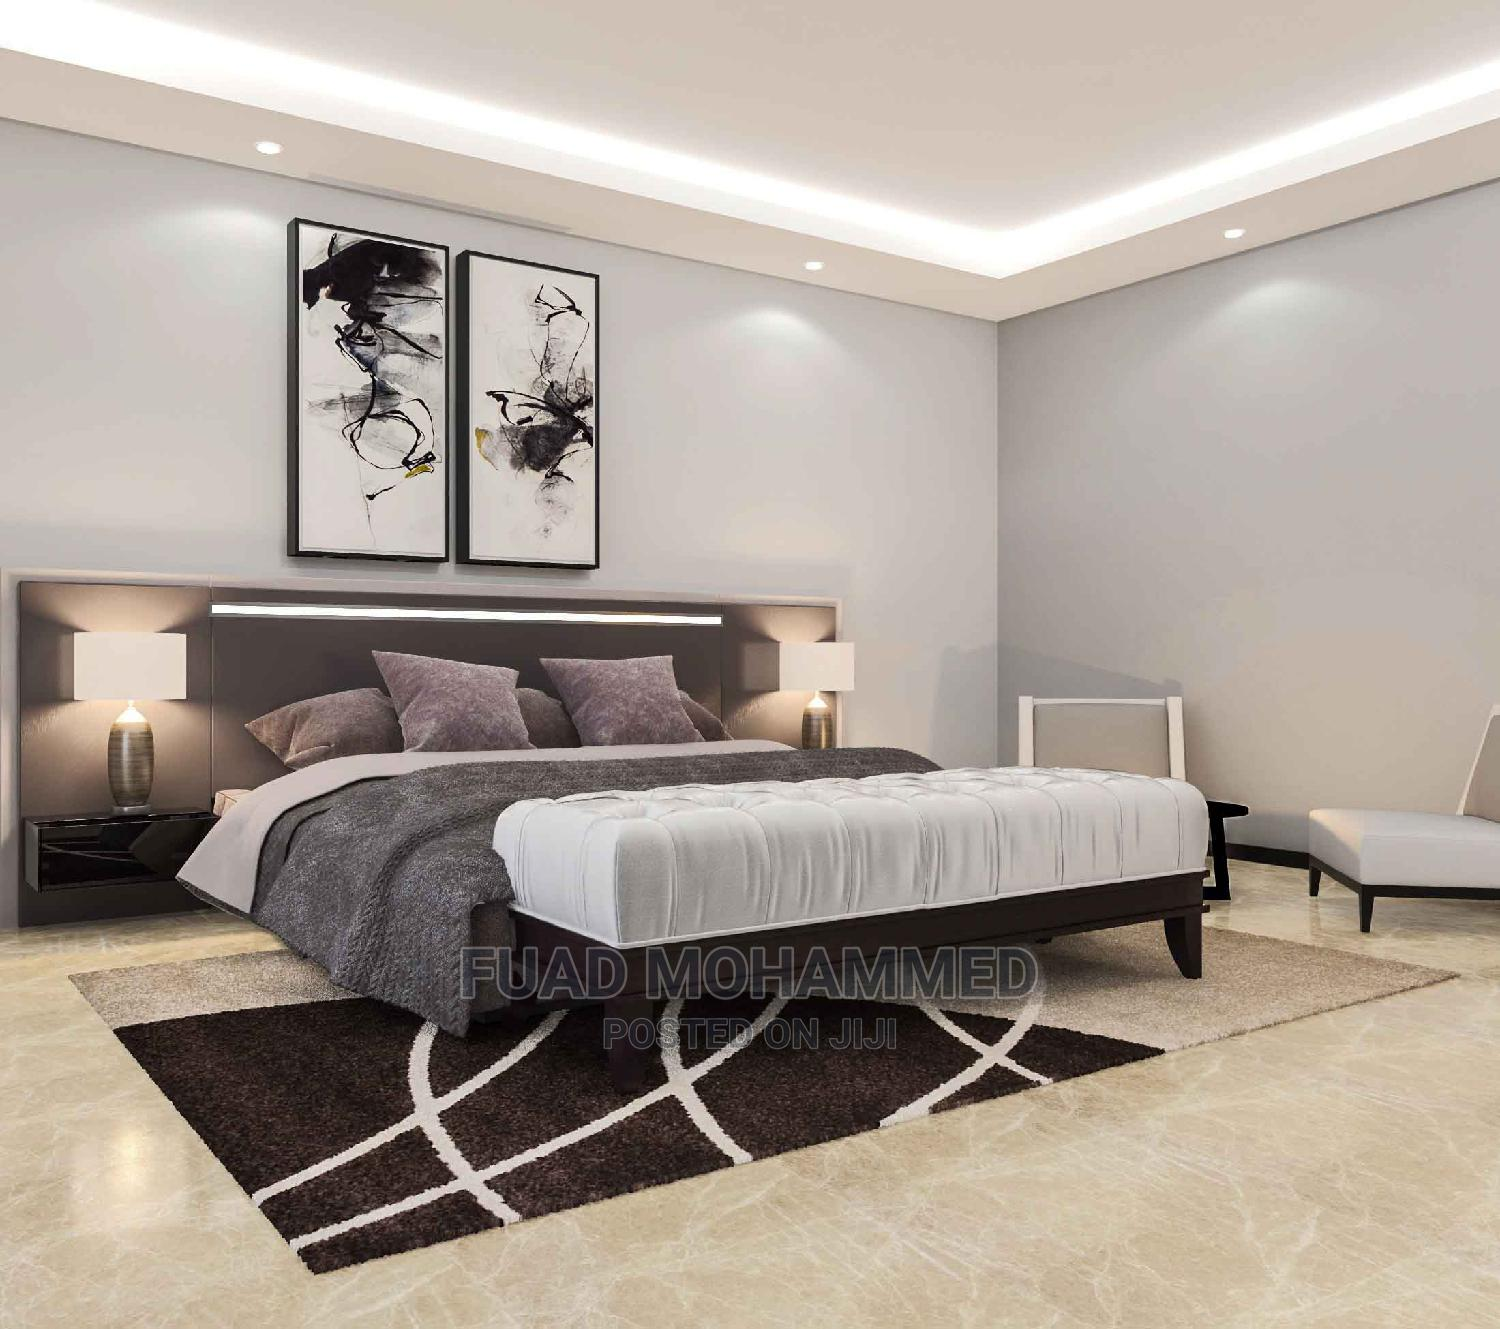 3bdrm Apartment in Get-Us Real Estate, Bole for Sale   Houses & Apartments For Sale for sale in Bole, Addis Ababa, Ethiopia